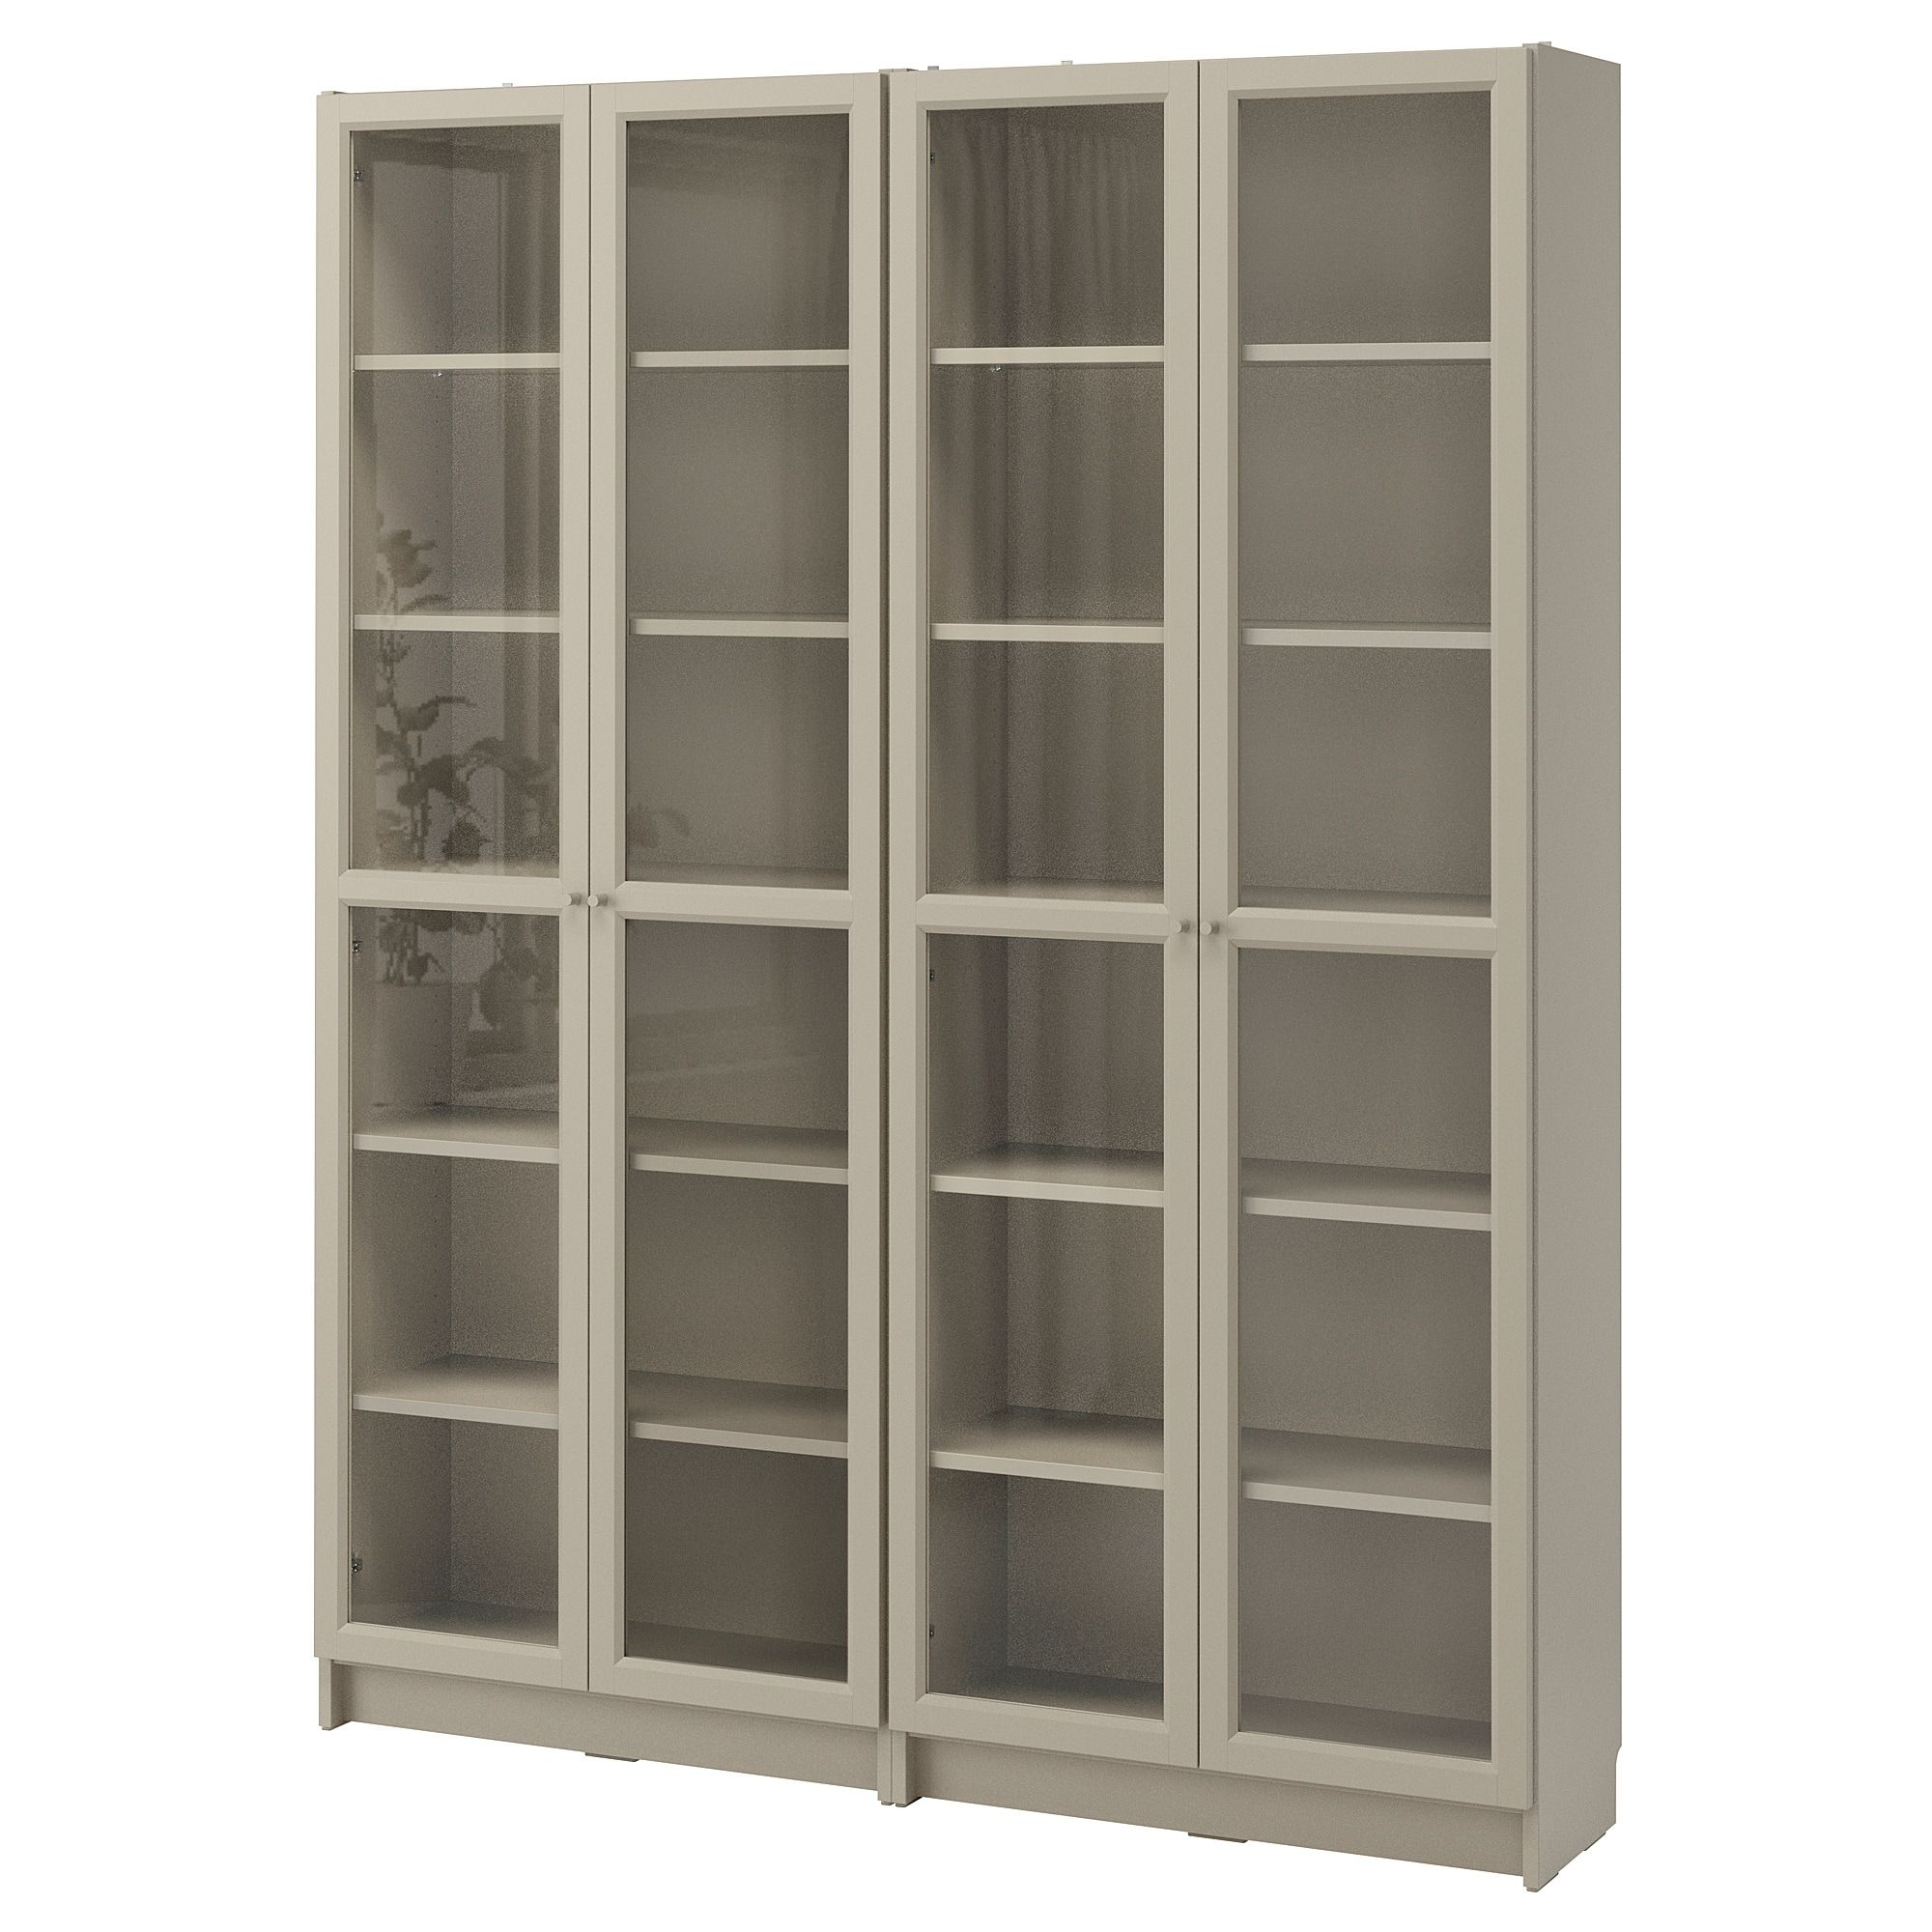 Ikea Us Furniture And Home Furnishings Bookcase With Glass Doors Billy Bookcase Bookcase